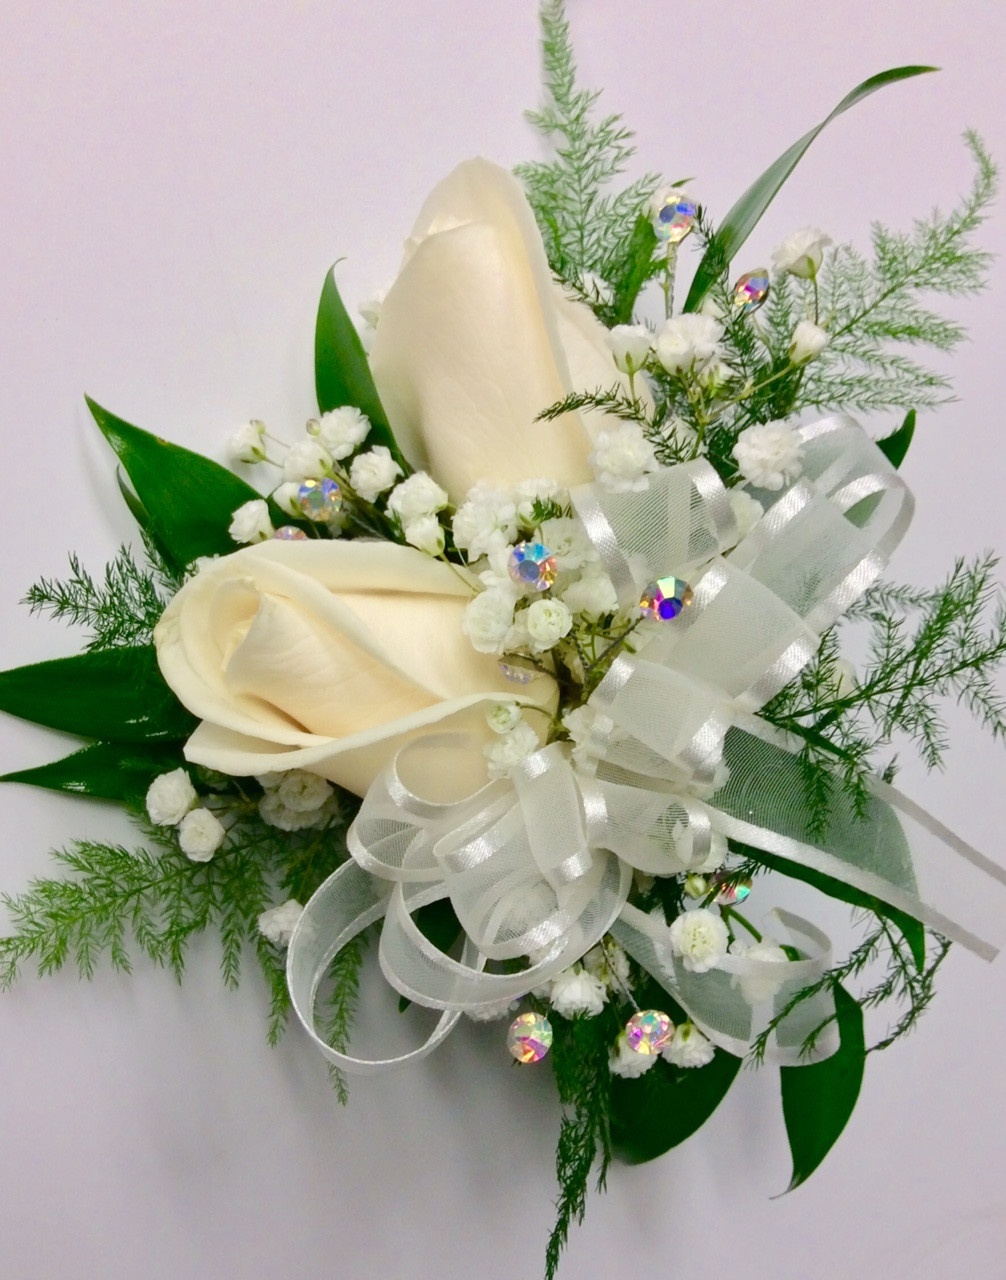 2 Bloom Standard Size White Rose Wrist Corsage - Centerville Florists